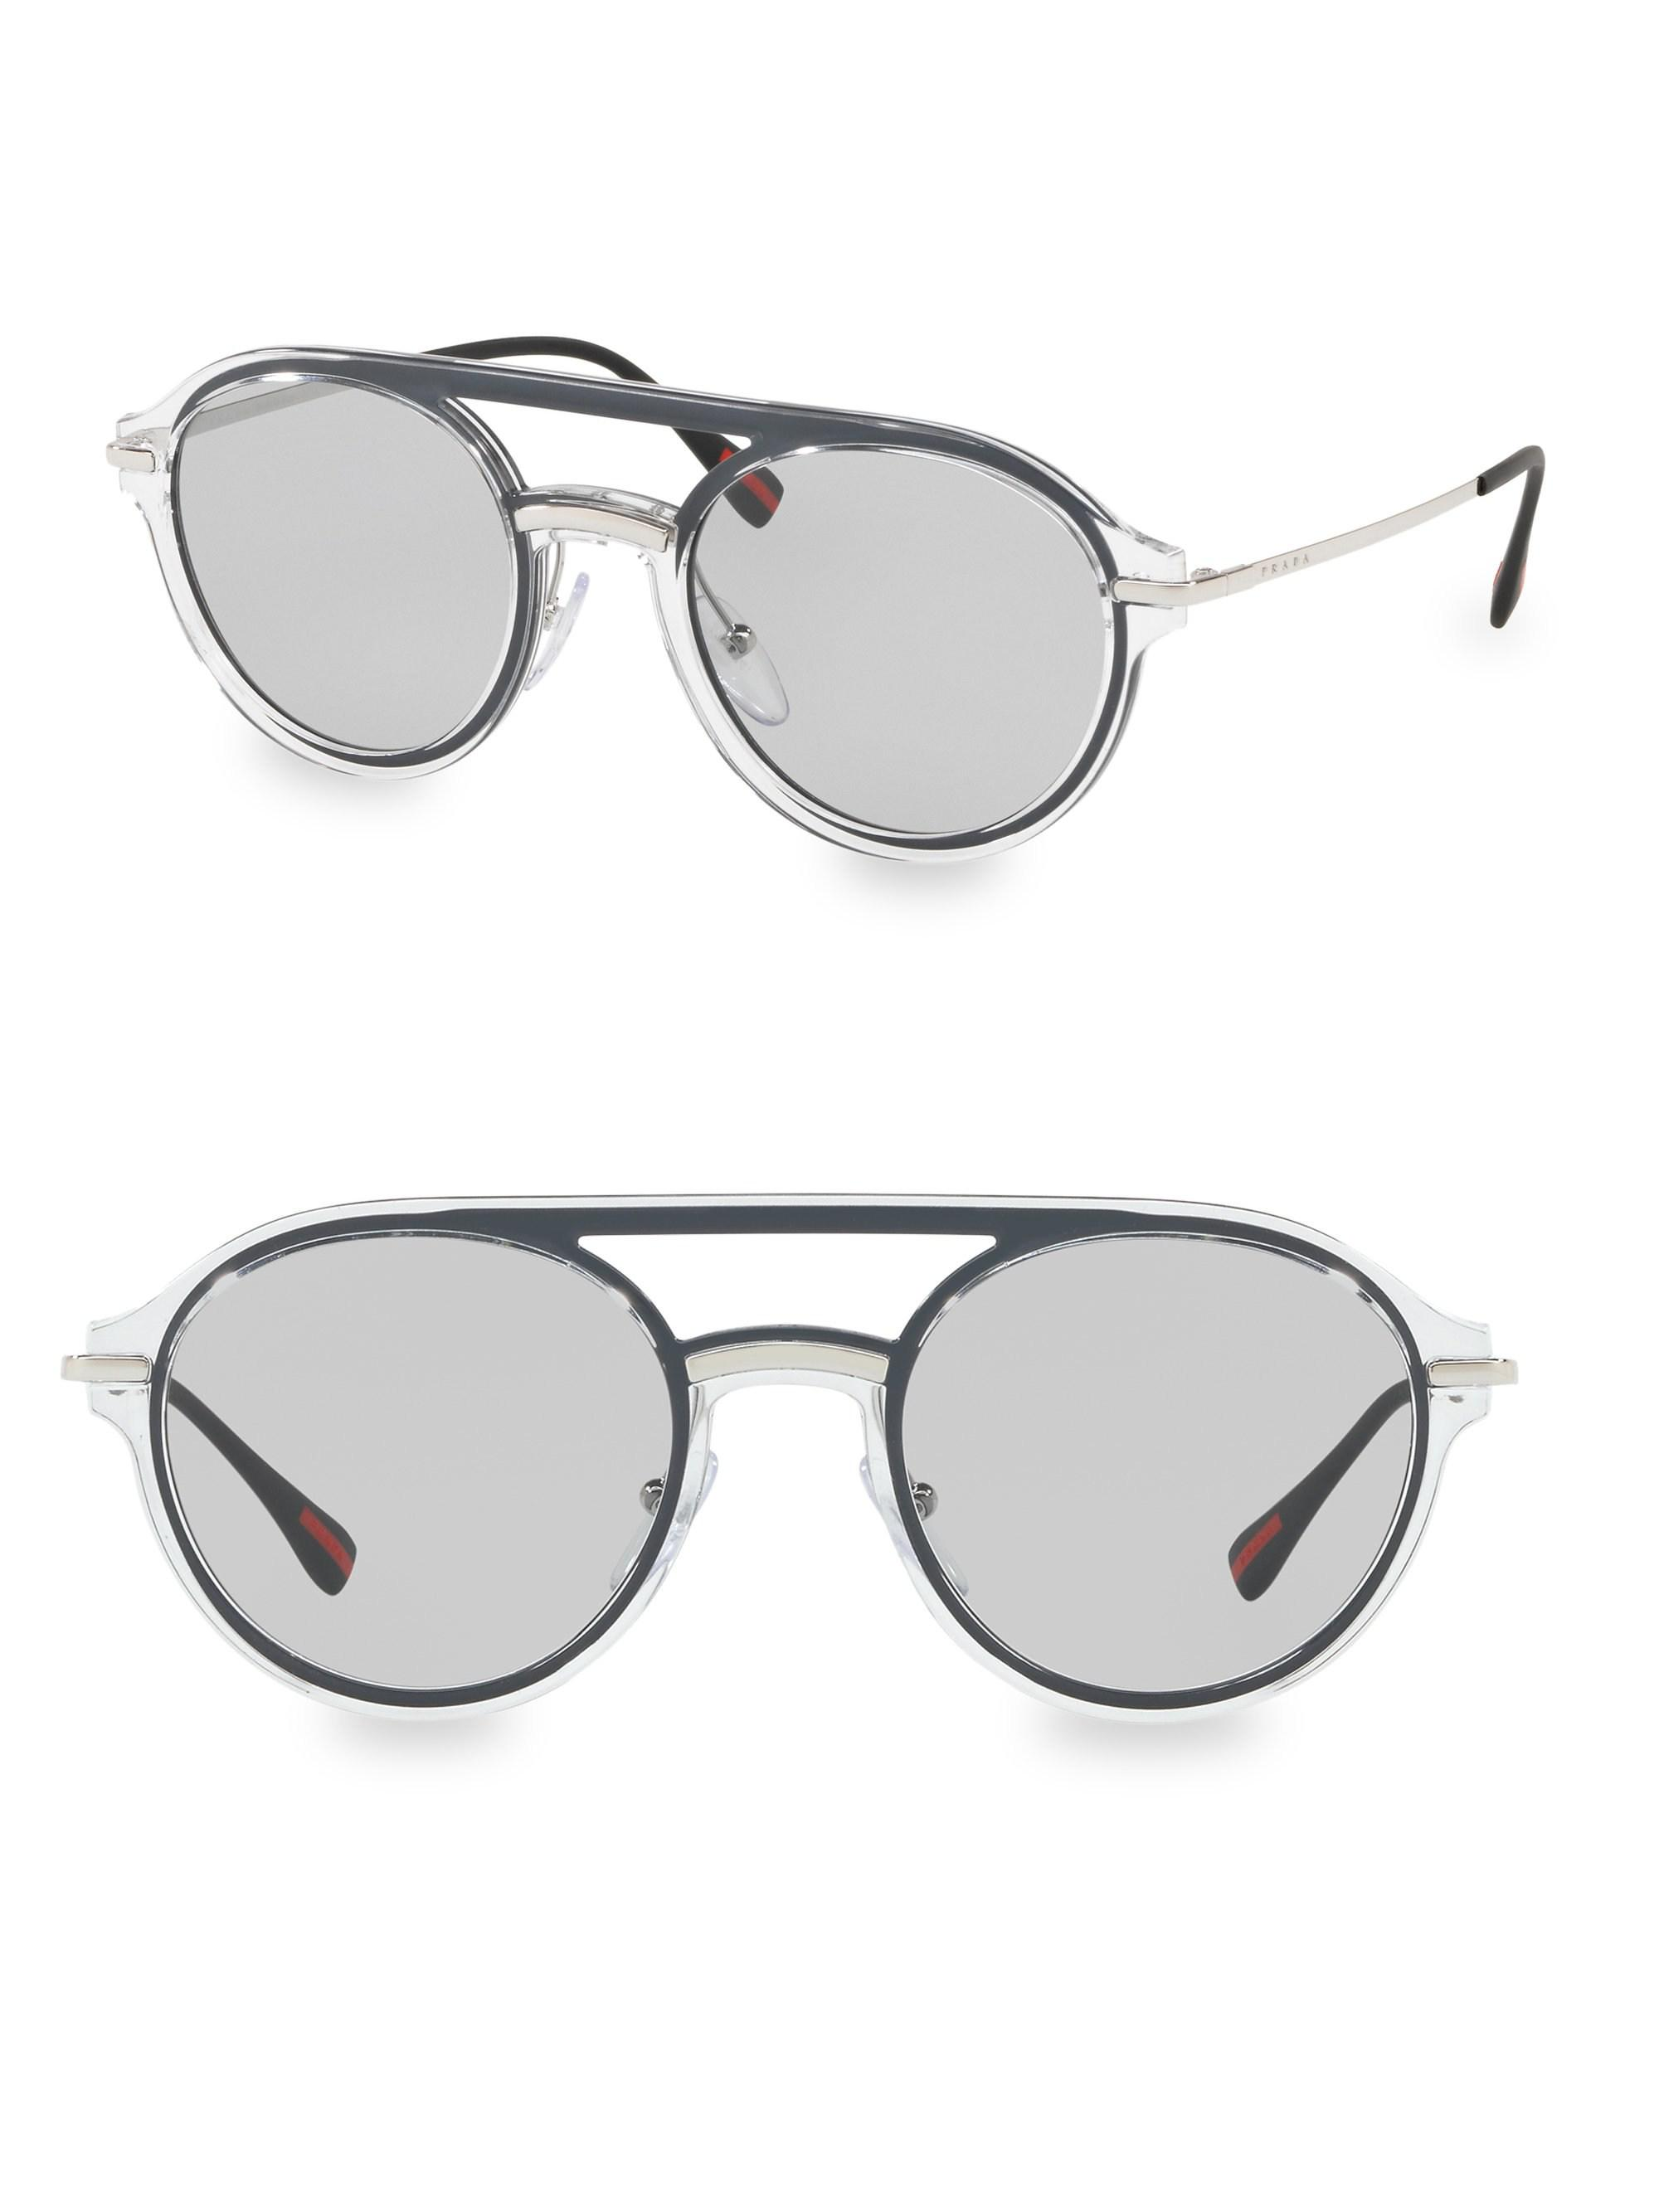 1e6596bfb1 Prada 51mm Linea Rossa Oval Aviator Sunglasses in Metallic for Men ...